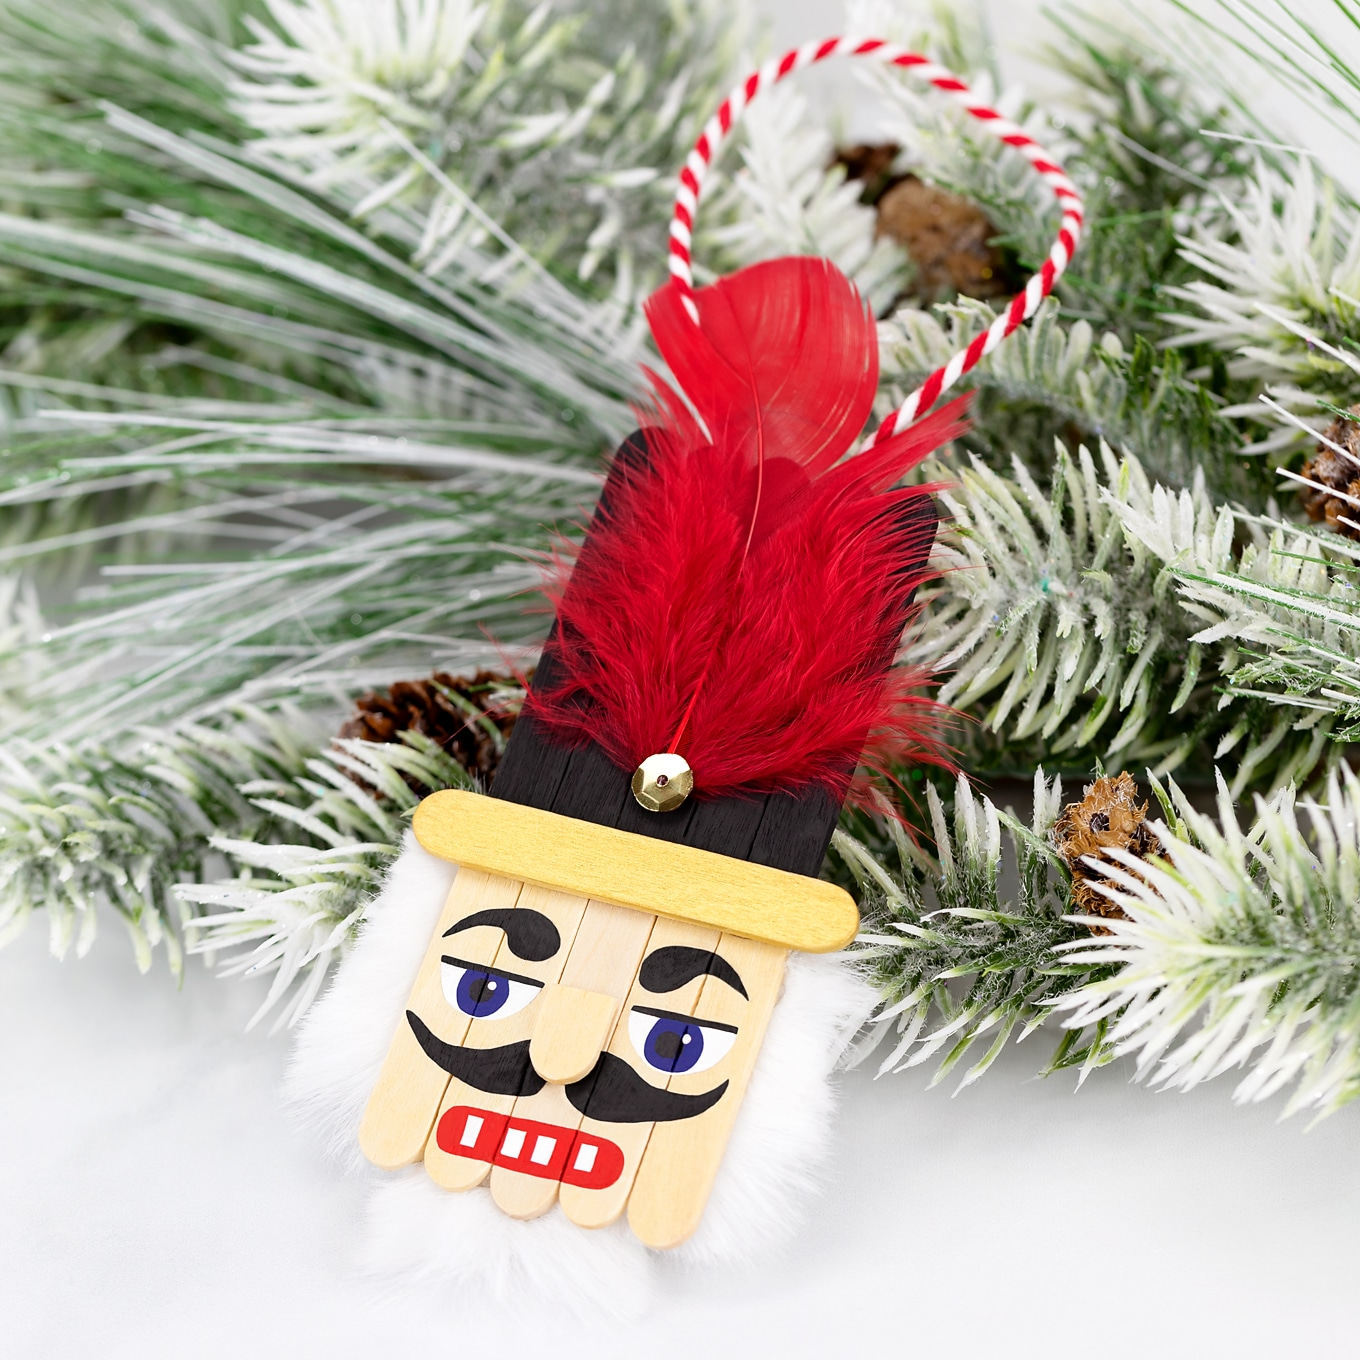 Popsicle Stick Nutcracker Ornament Tutorial and Video